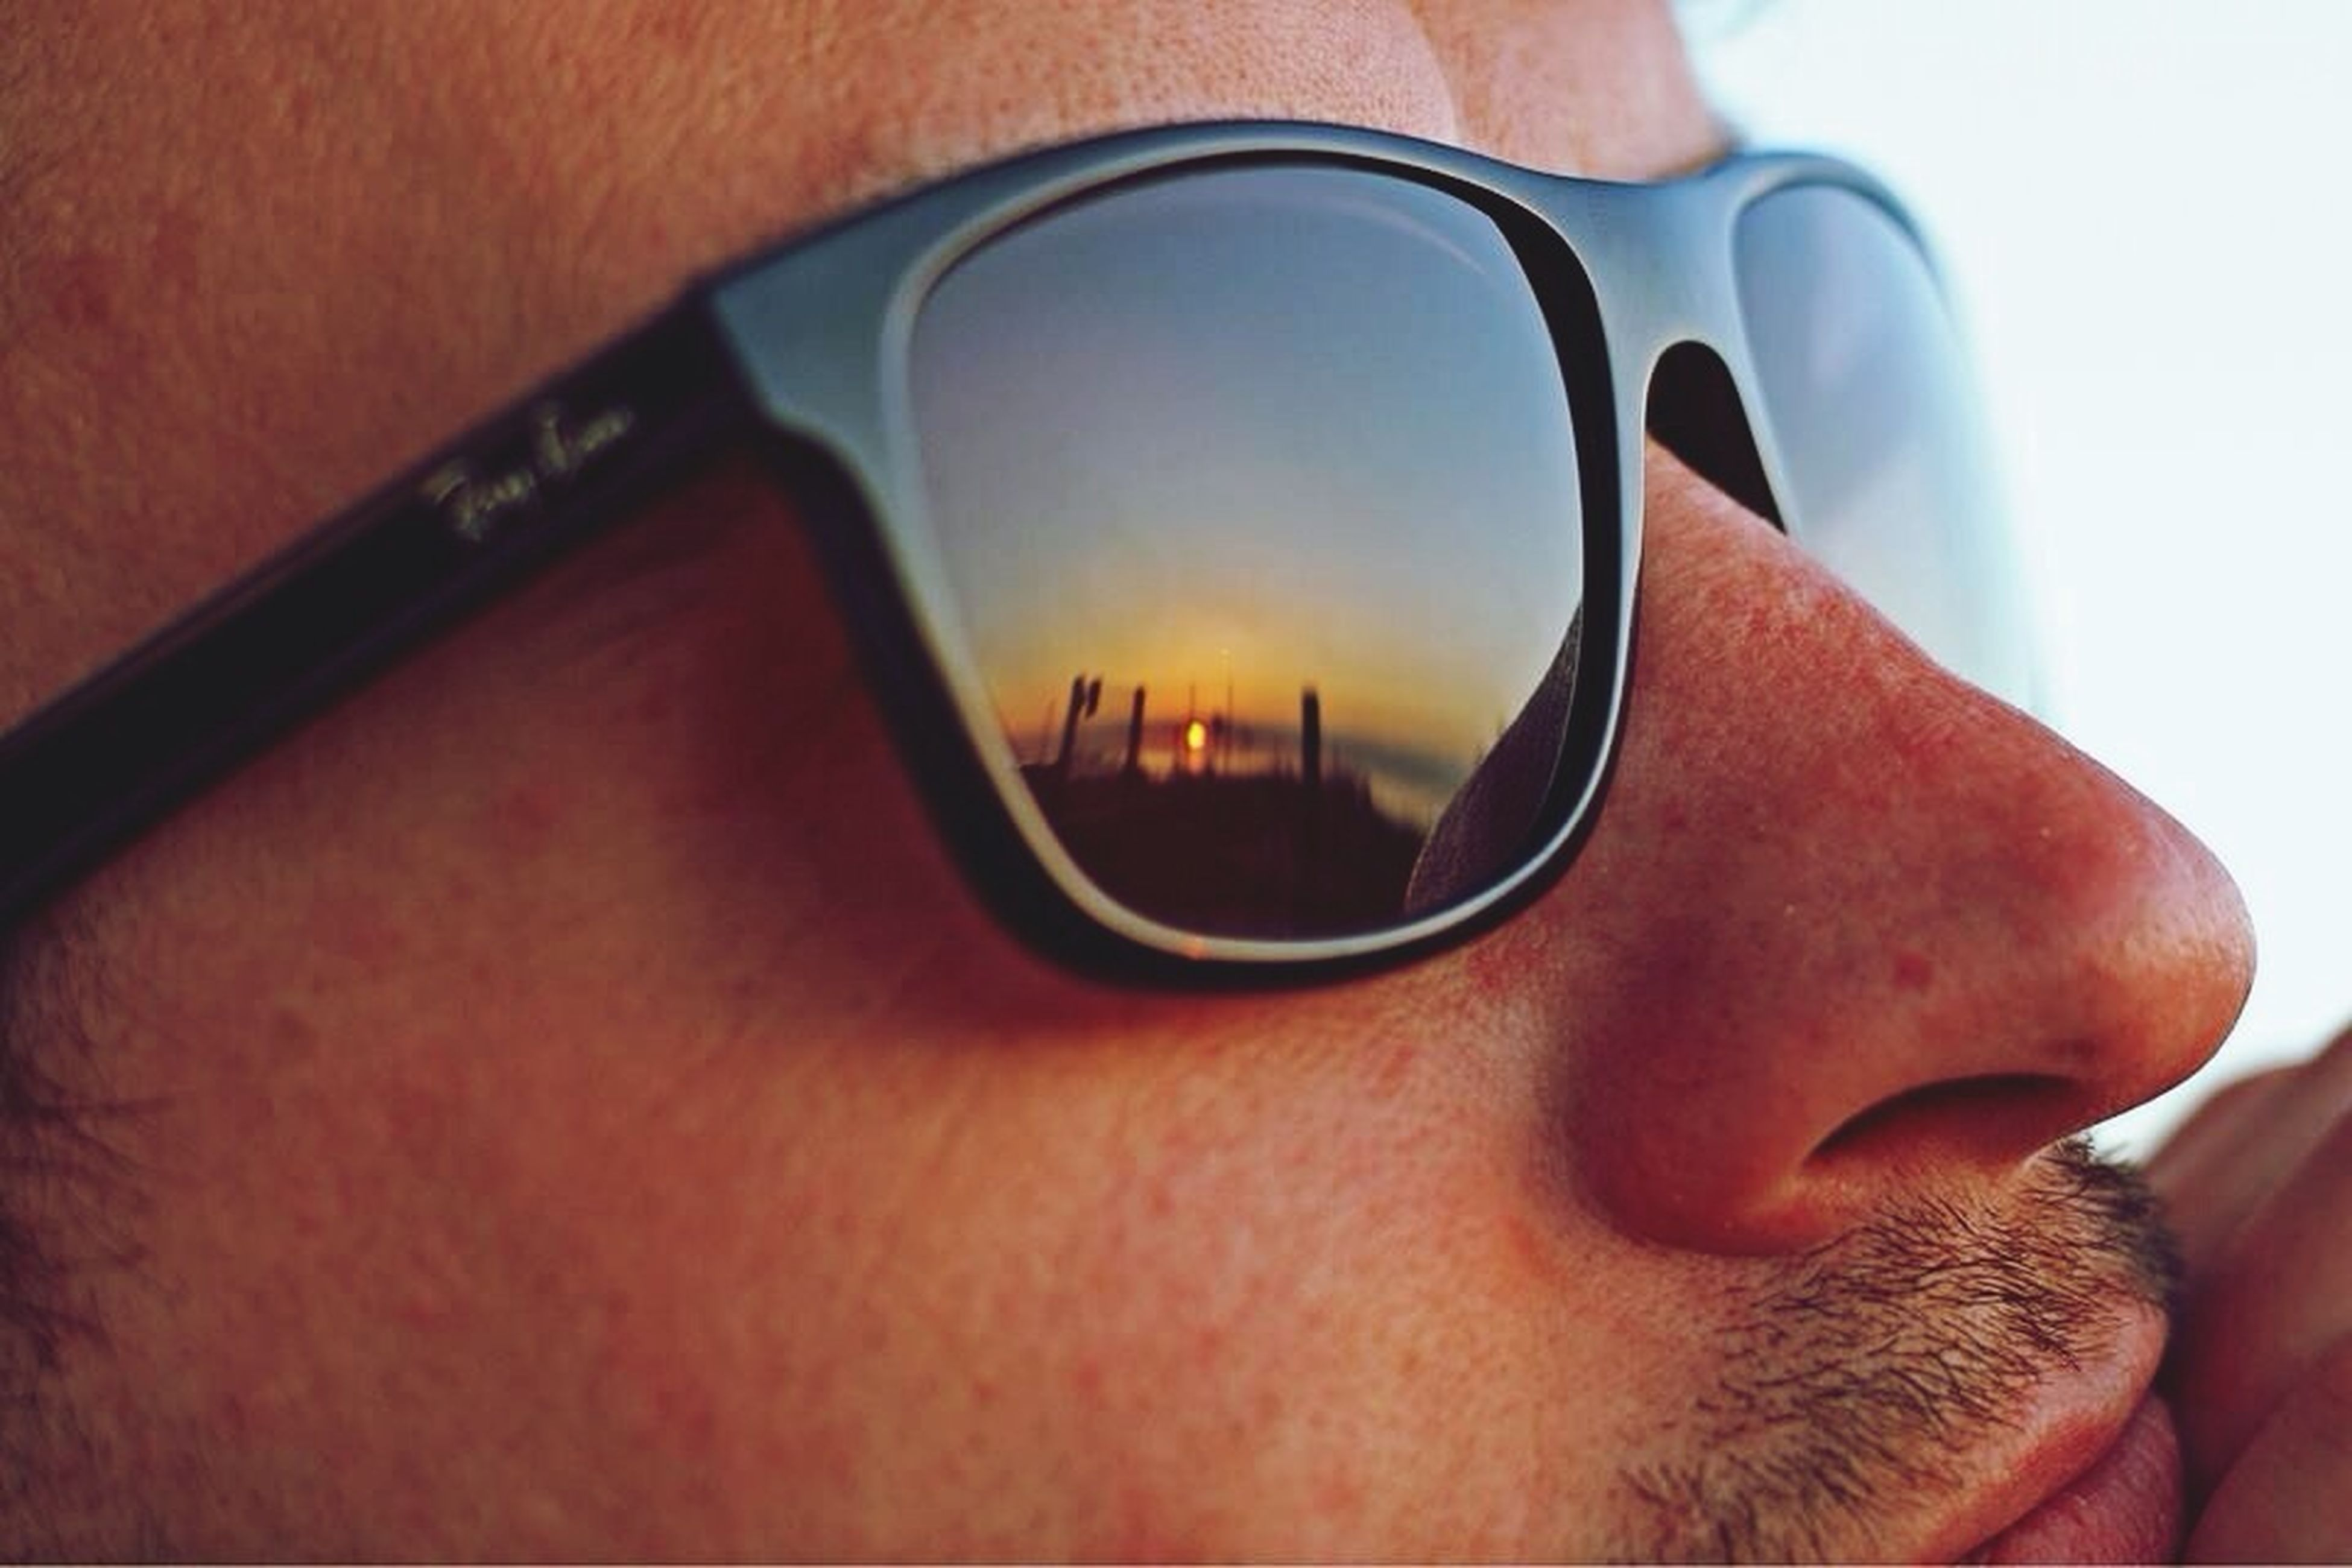 lifestyles, leisure activity, part of, sunglasses, transportation, mode of transport, reflection, men, close-up, cropped, holding, person, sitting, unrecognizable person, travel, car